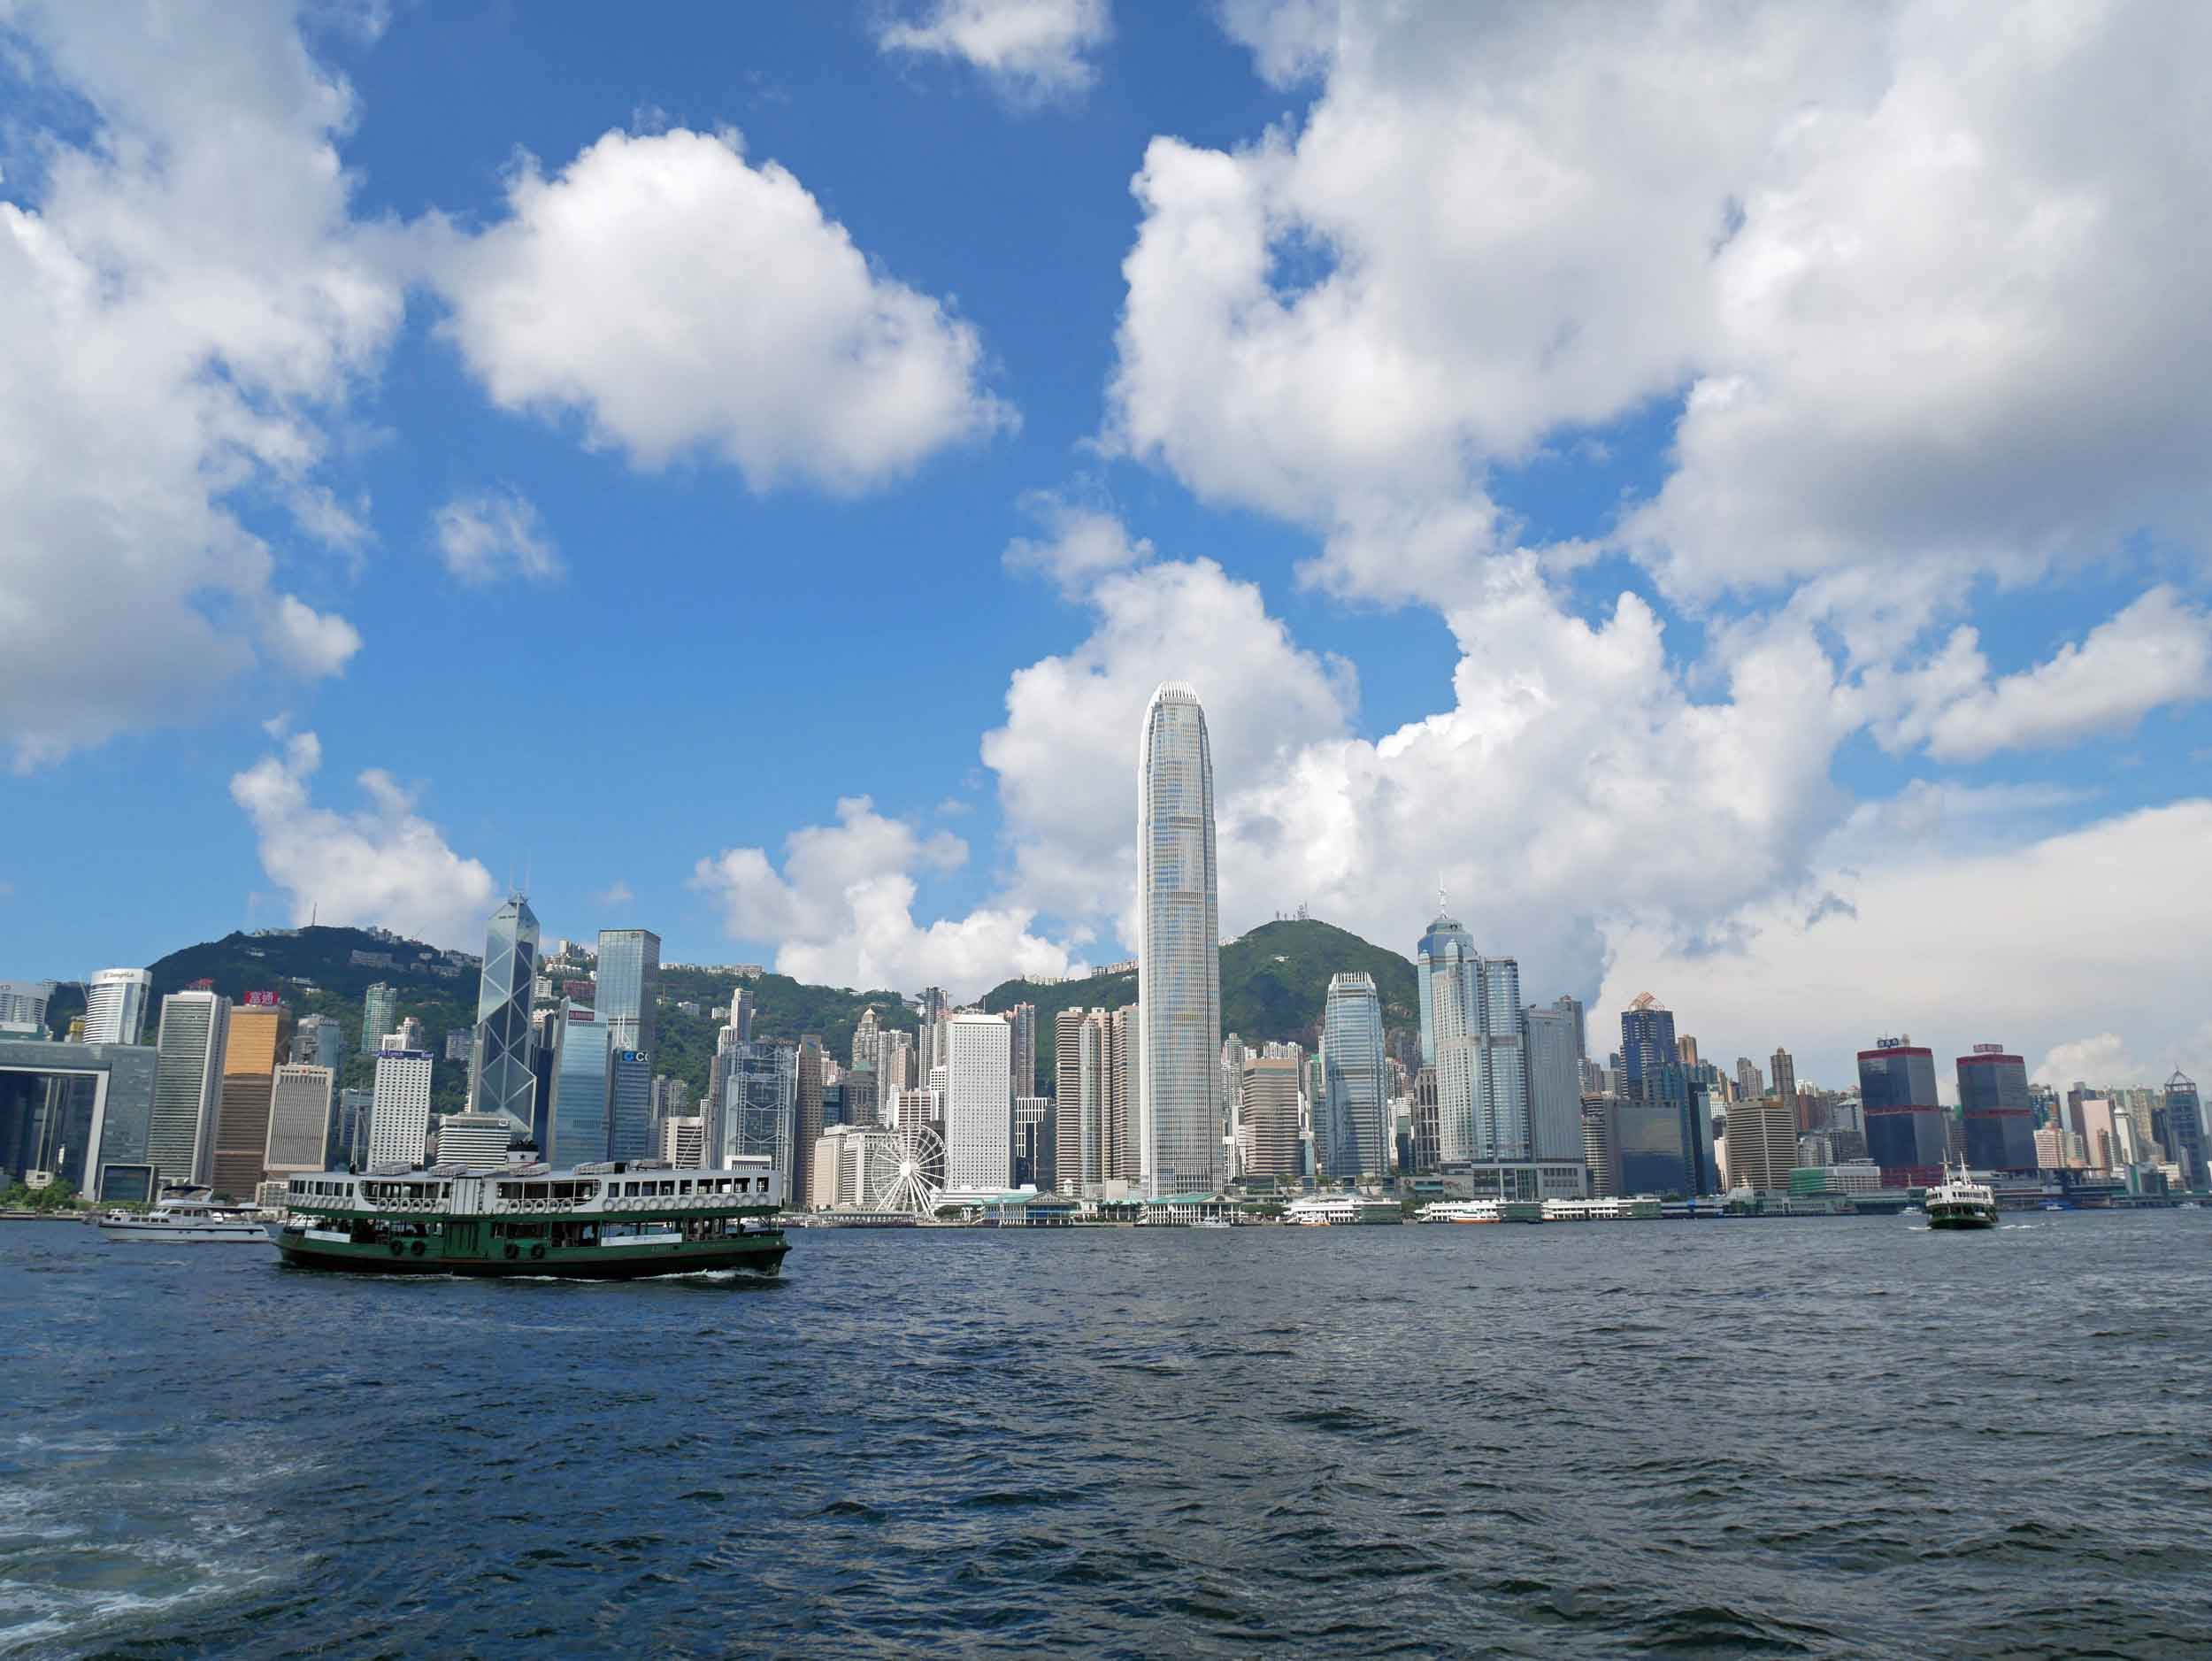 The Park also provided excellent views of Kowloon's skyline.